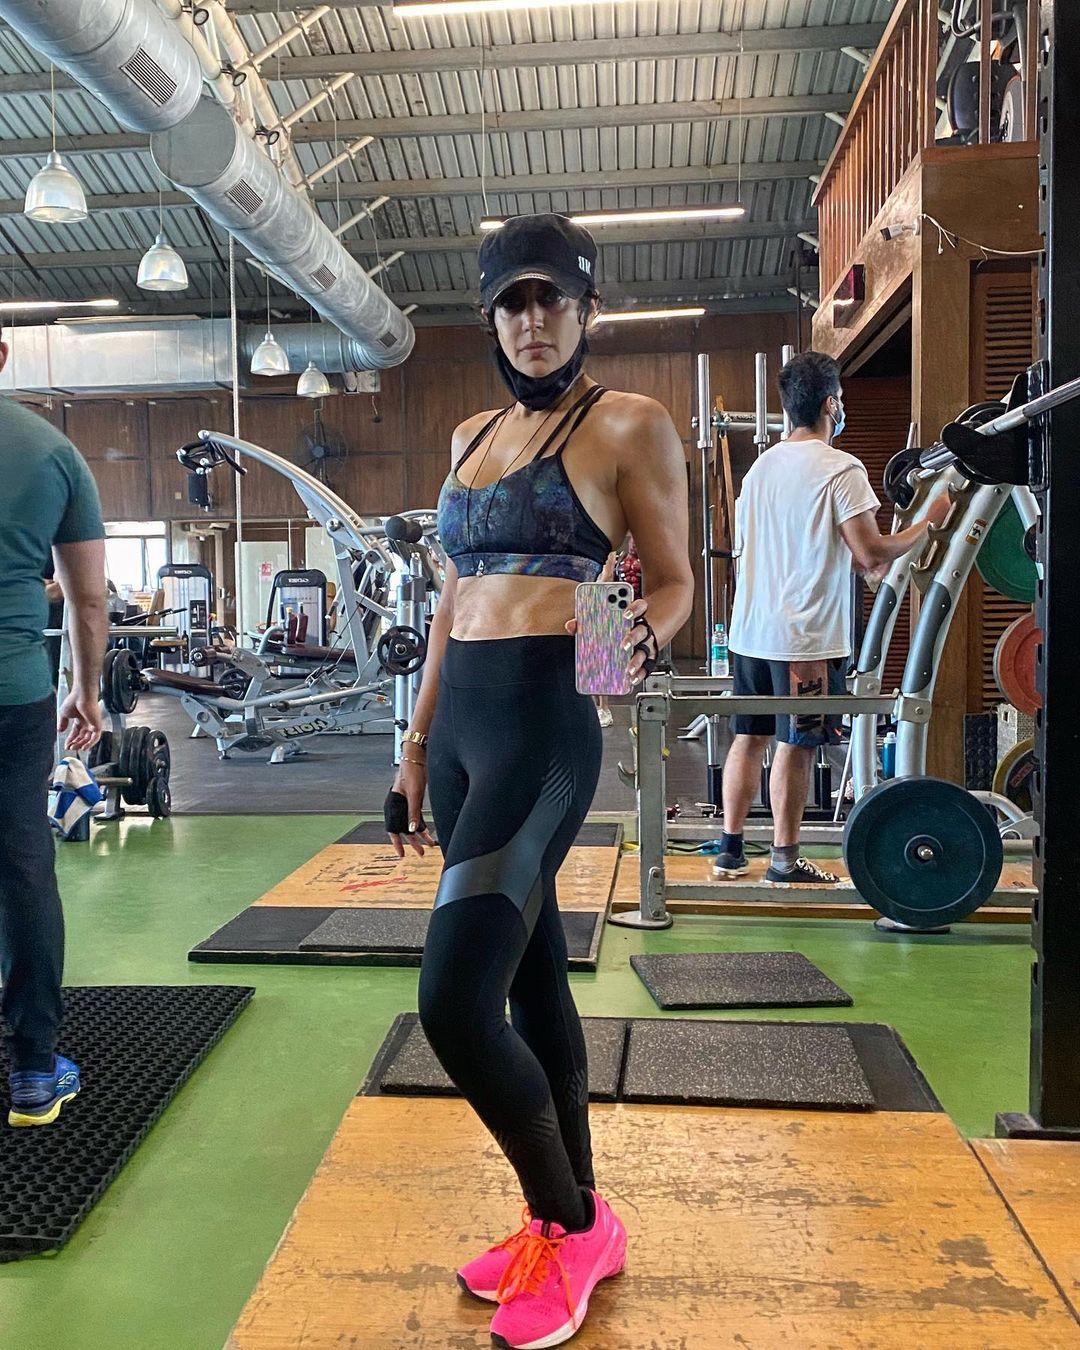 Mandira Bedi while working out at a gym